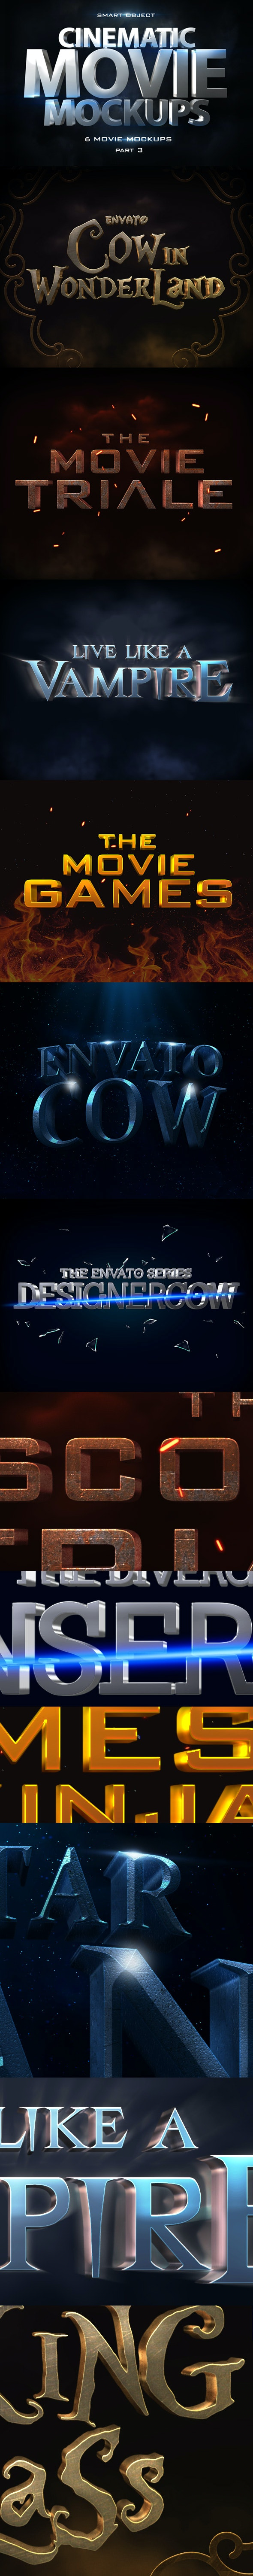 Cinematic 3D Movie Mockups V3 - Text Effects Styles